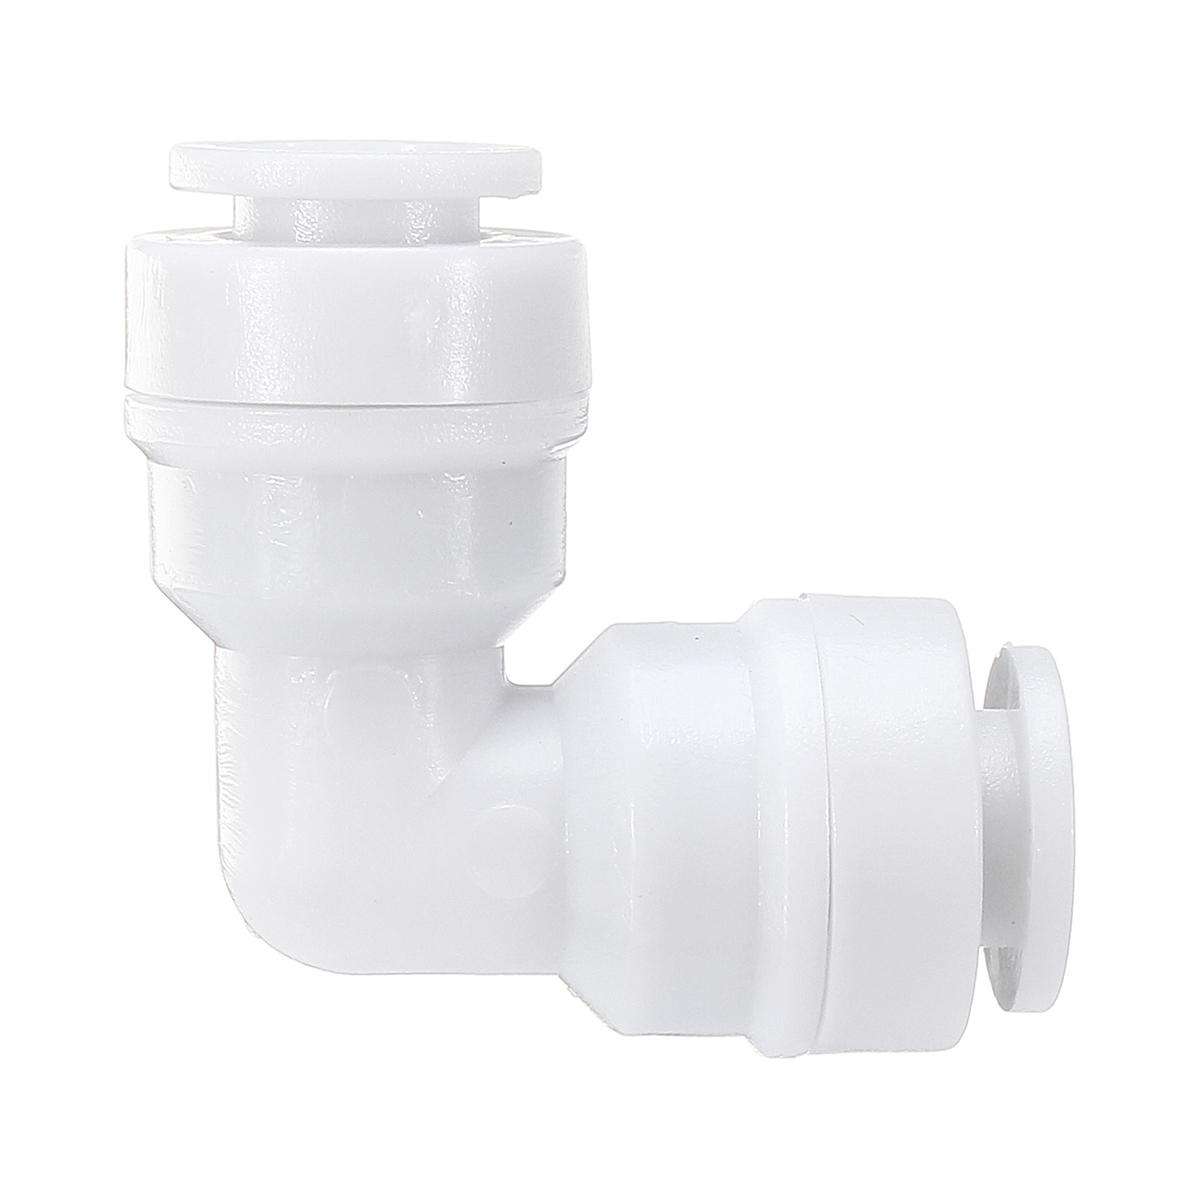 1/4 Inch RO Grade L Type Water Tube Quick Connect Parts Fittings Connection Pipes for Water Filters